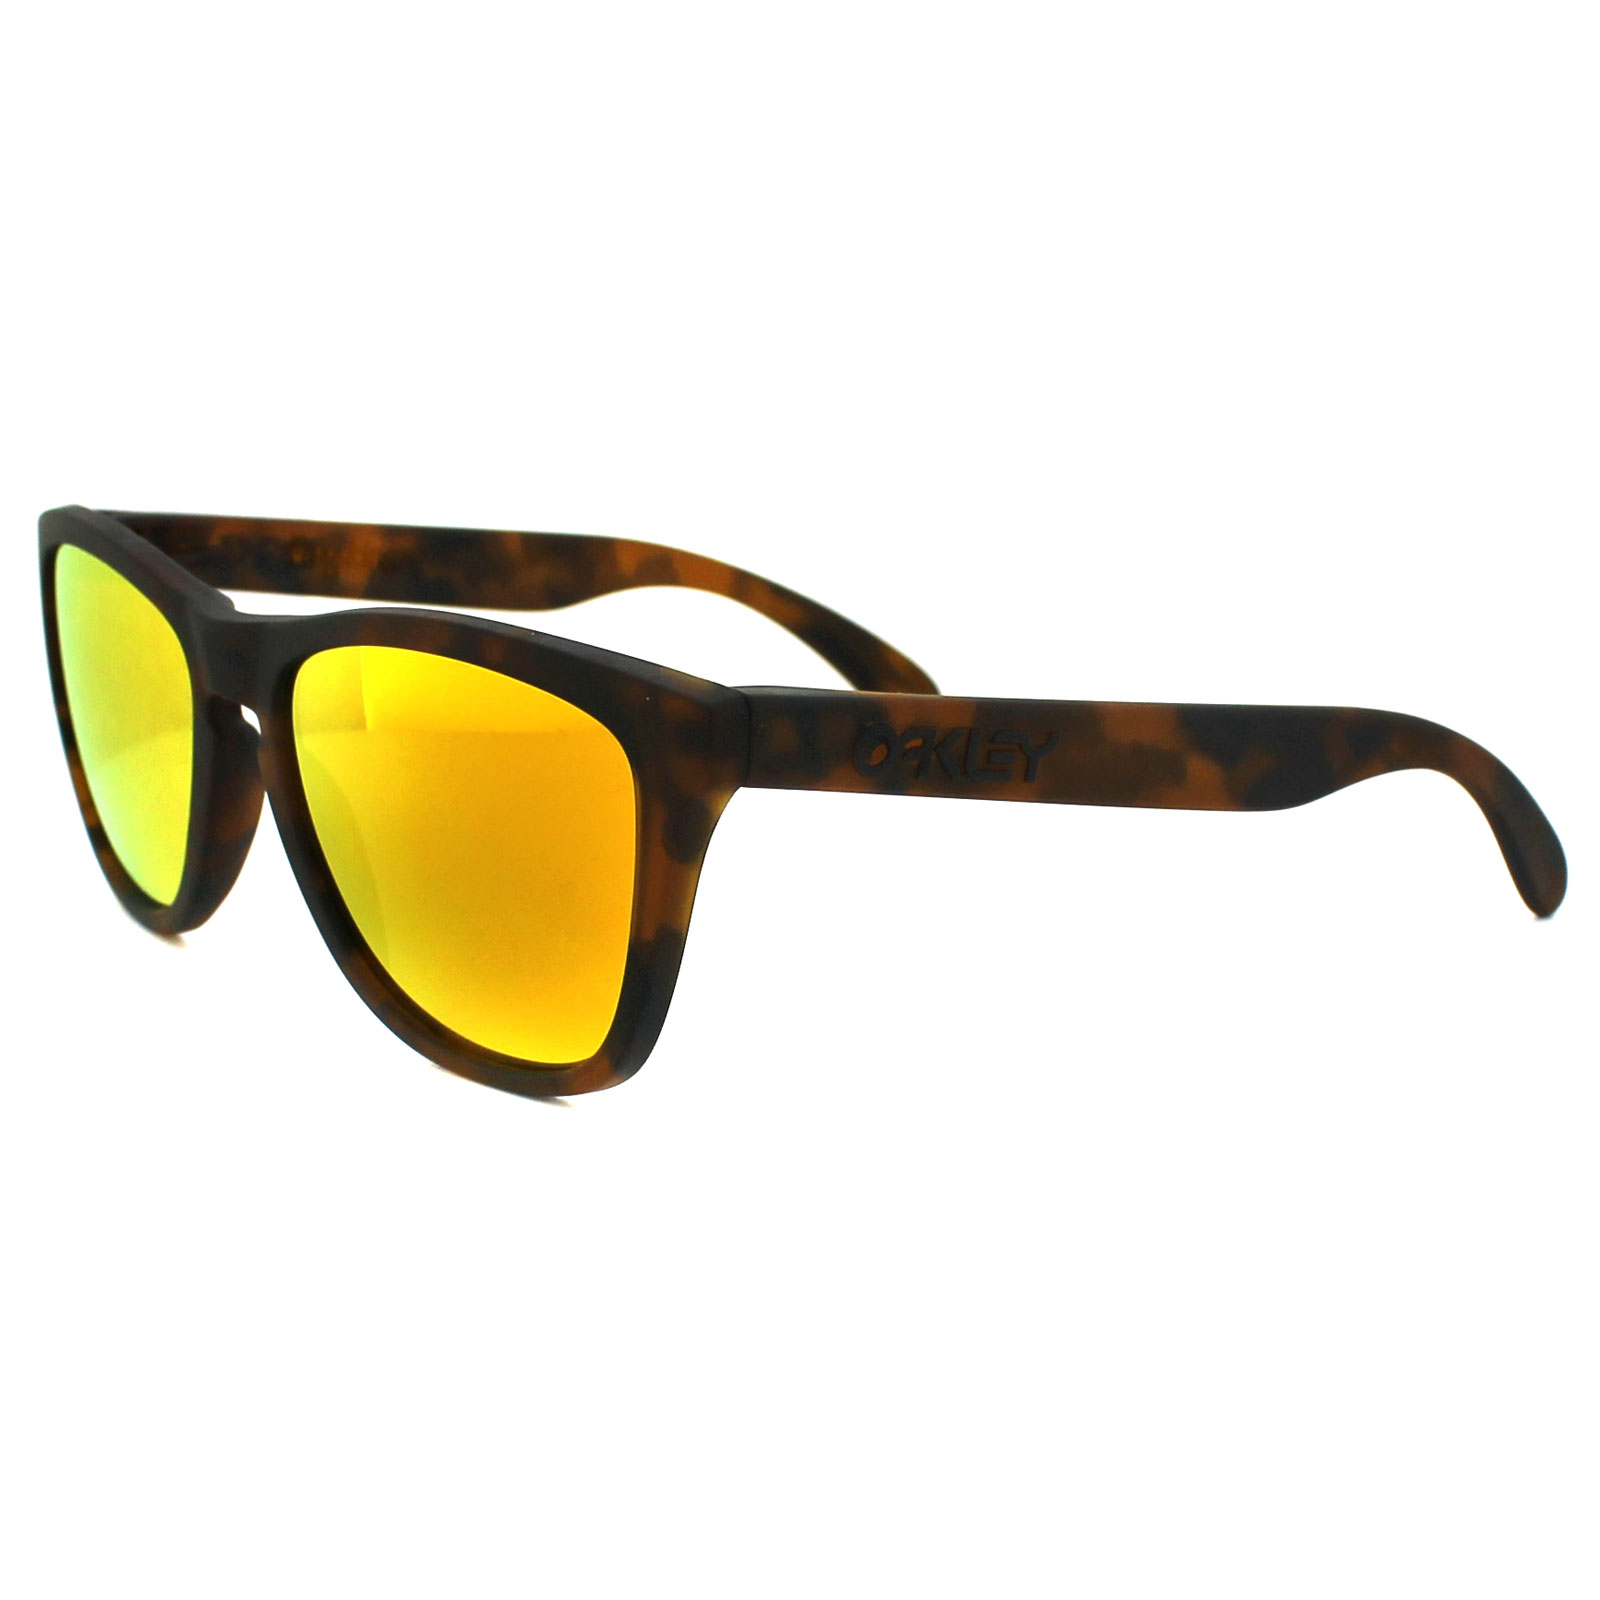 2203733f782eb Oakley Frogskins 24 Iridium Cat Eye Sunglasses « Heritage Malta